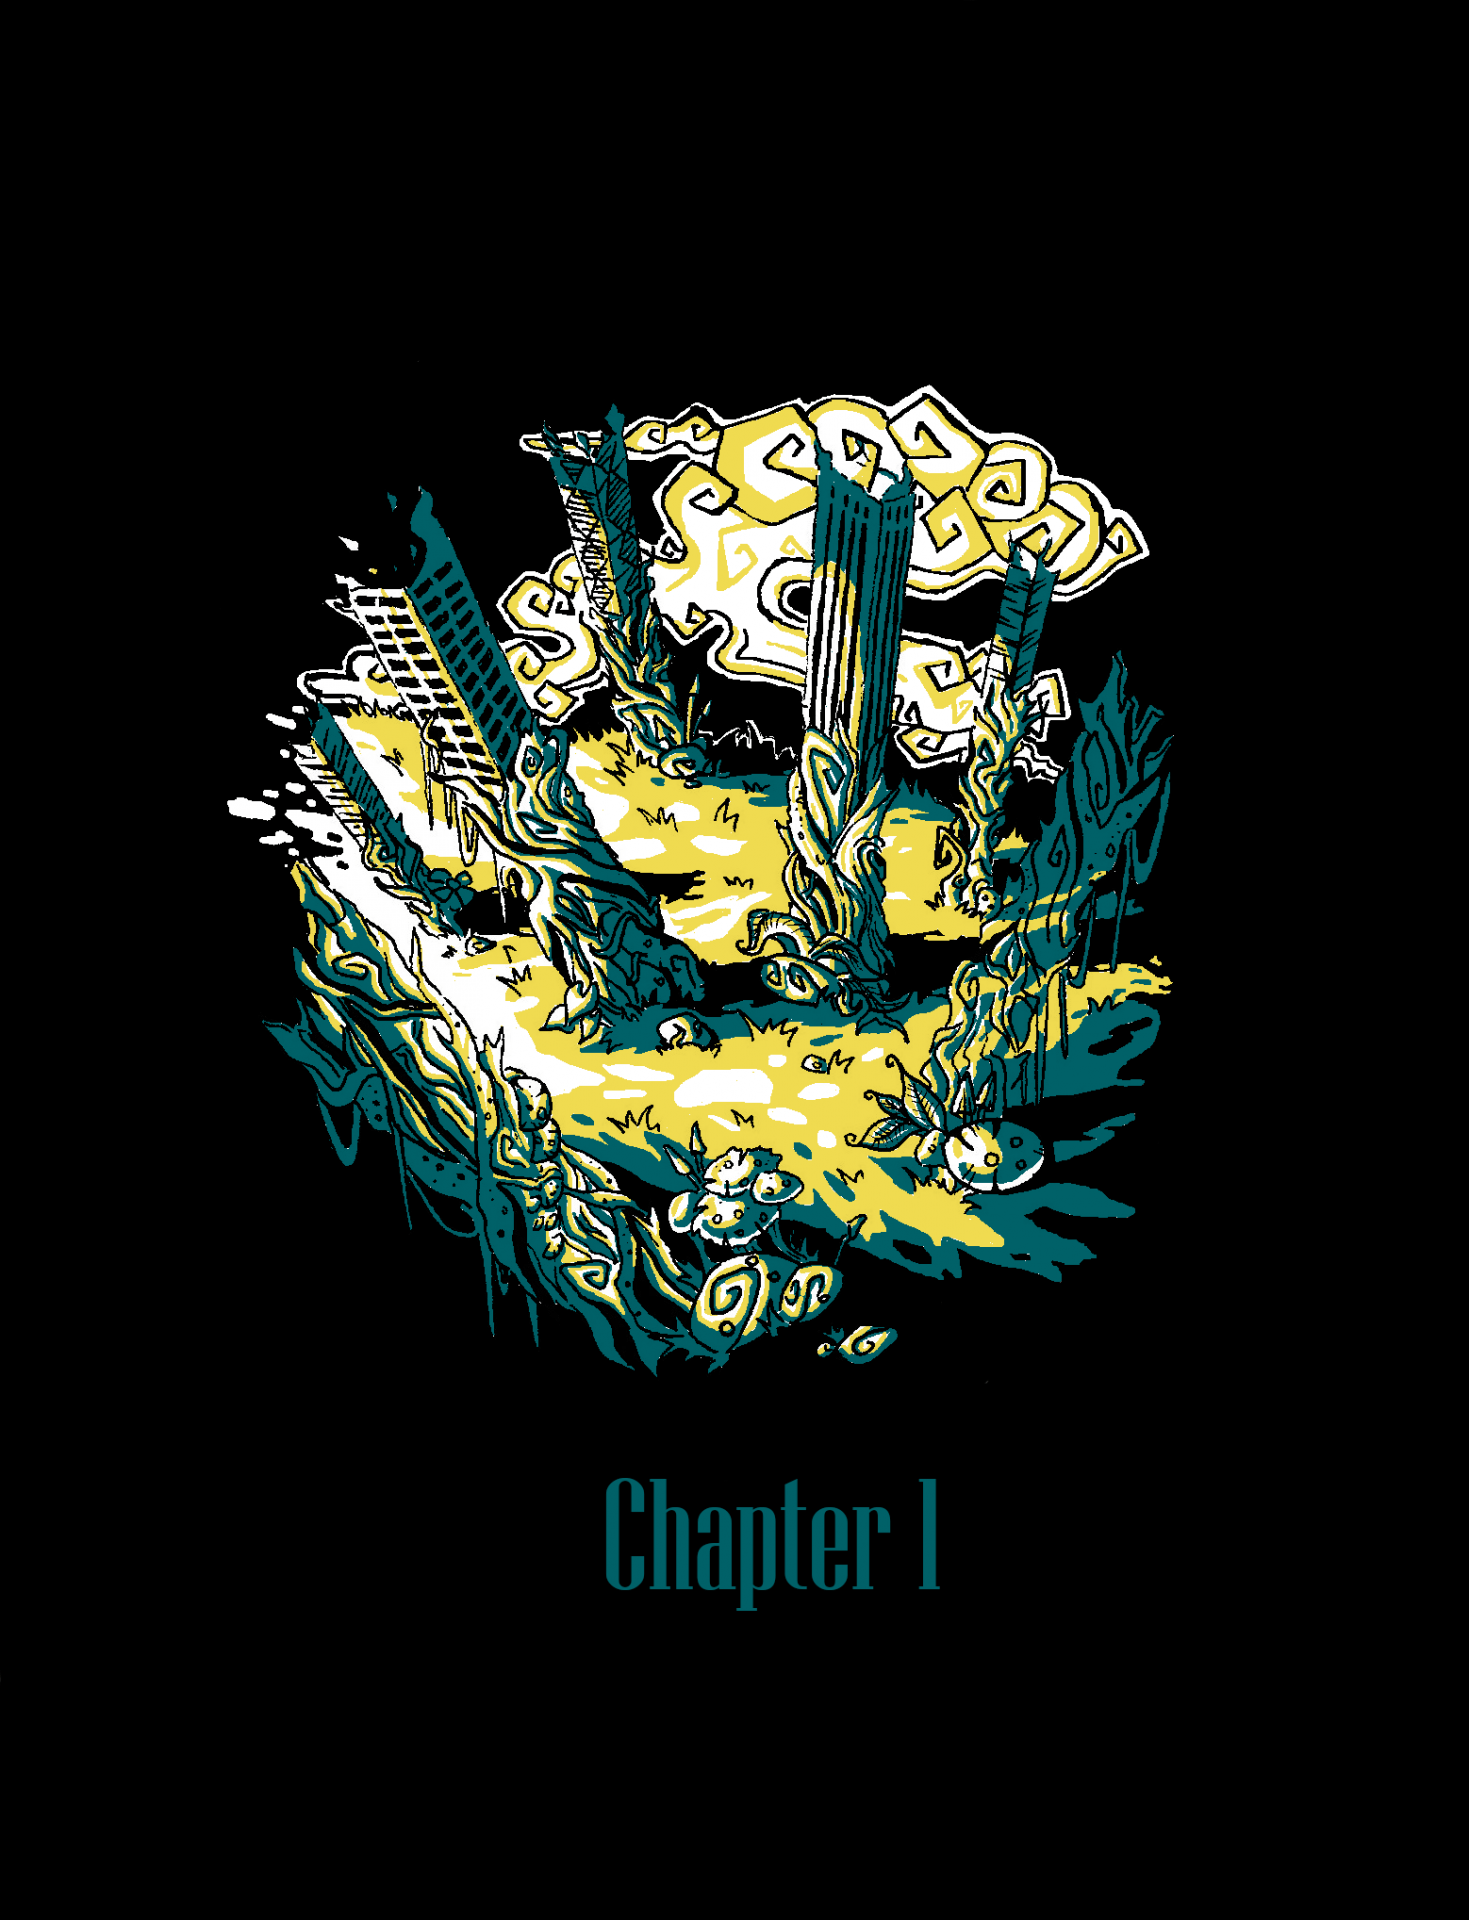 Illustration of plants growing up tall buildings with the caption 'Chapter 1'.